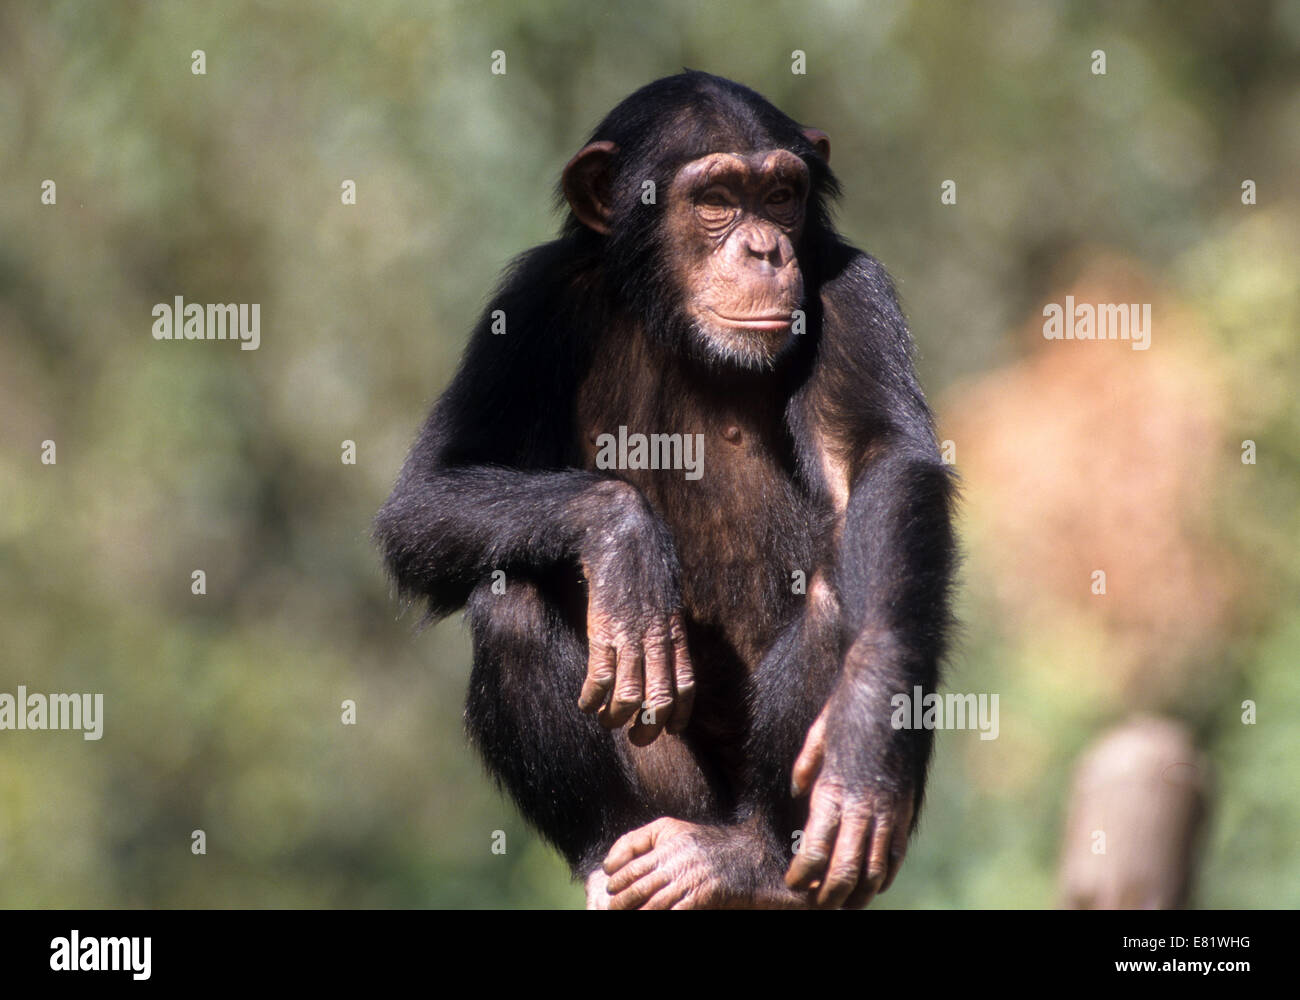 closeup portrait of a Chimpanzee (Pan troglodytes) in captivity in a zoo - Stock Image